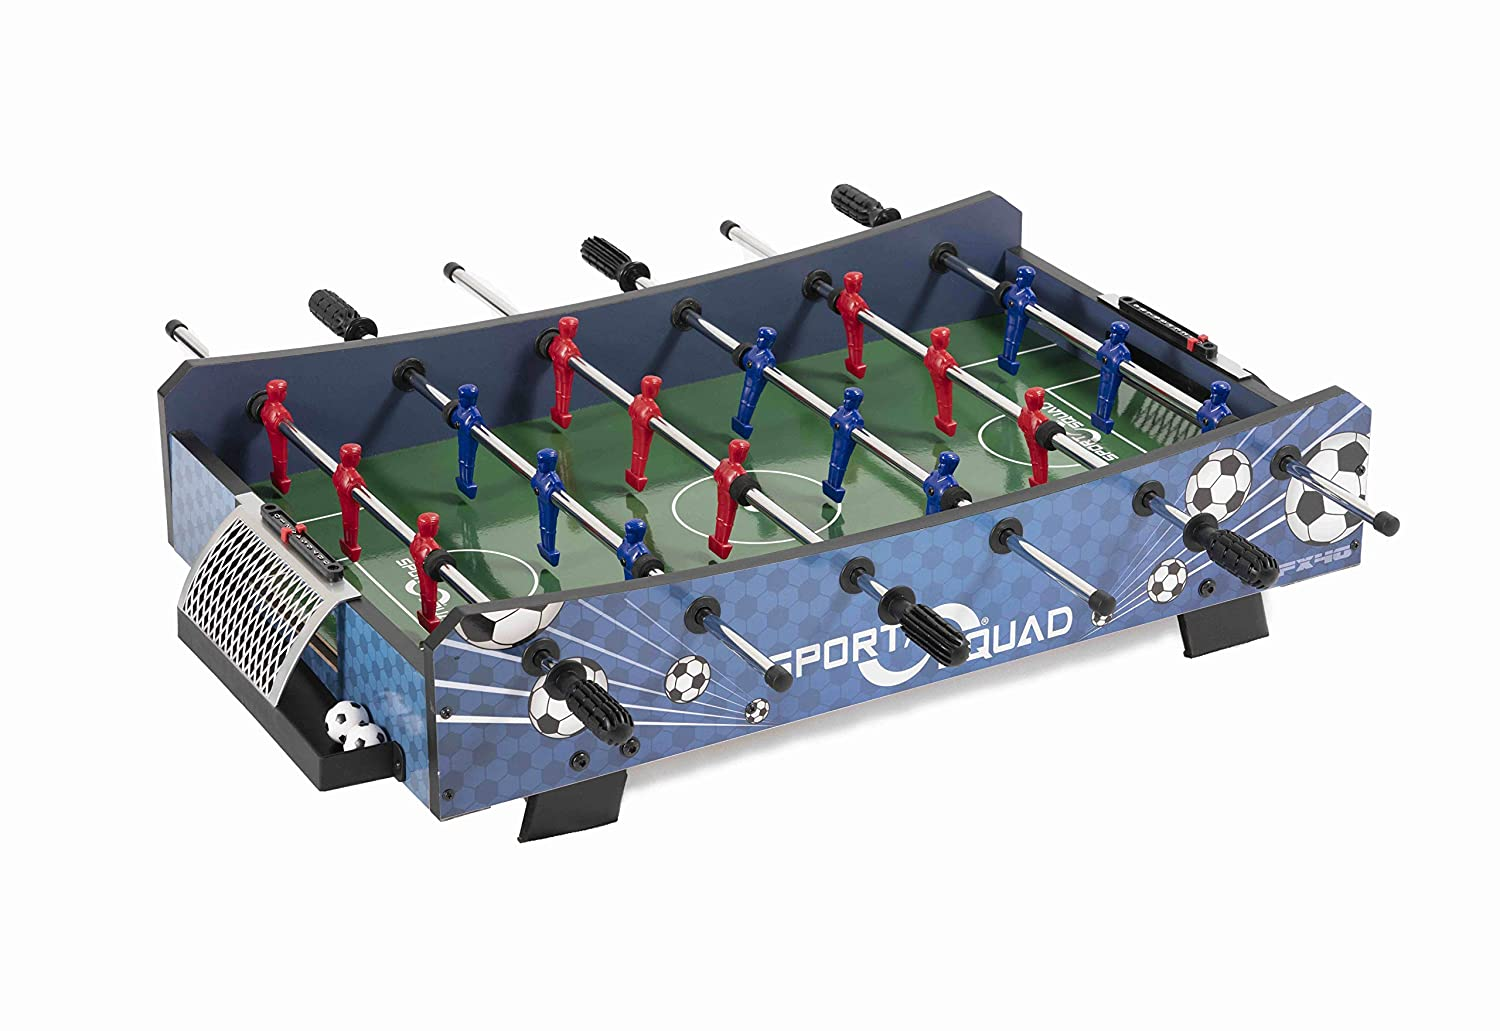 Sport Squad FX40 40 inch Table Top Foosball Table